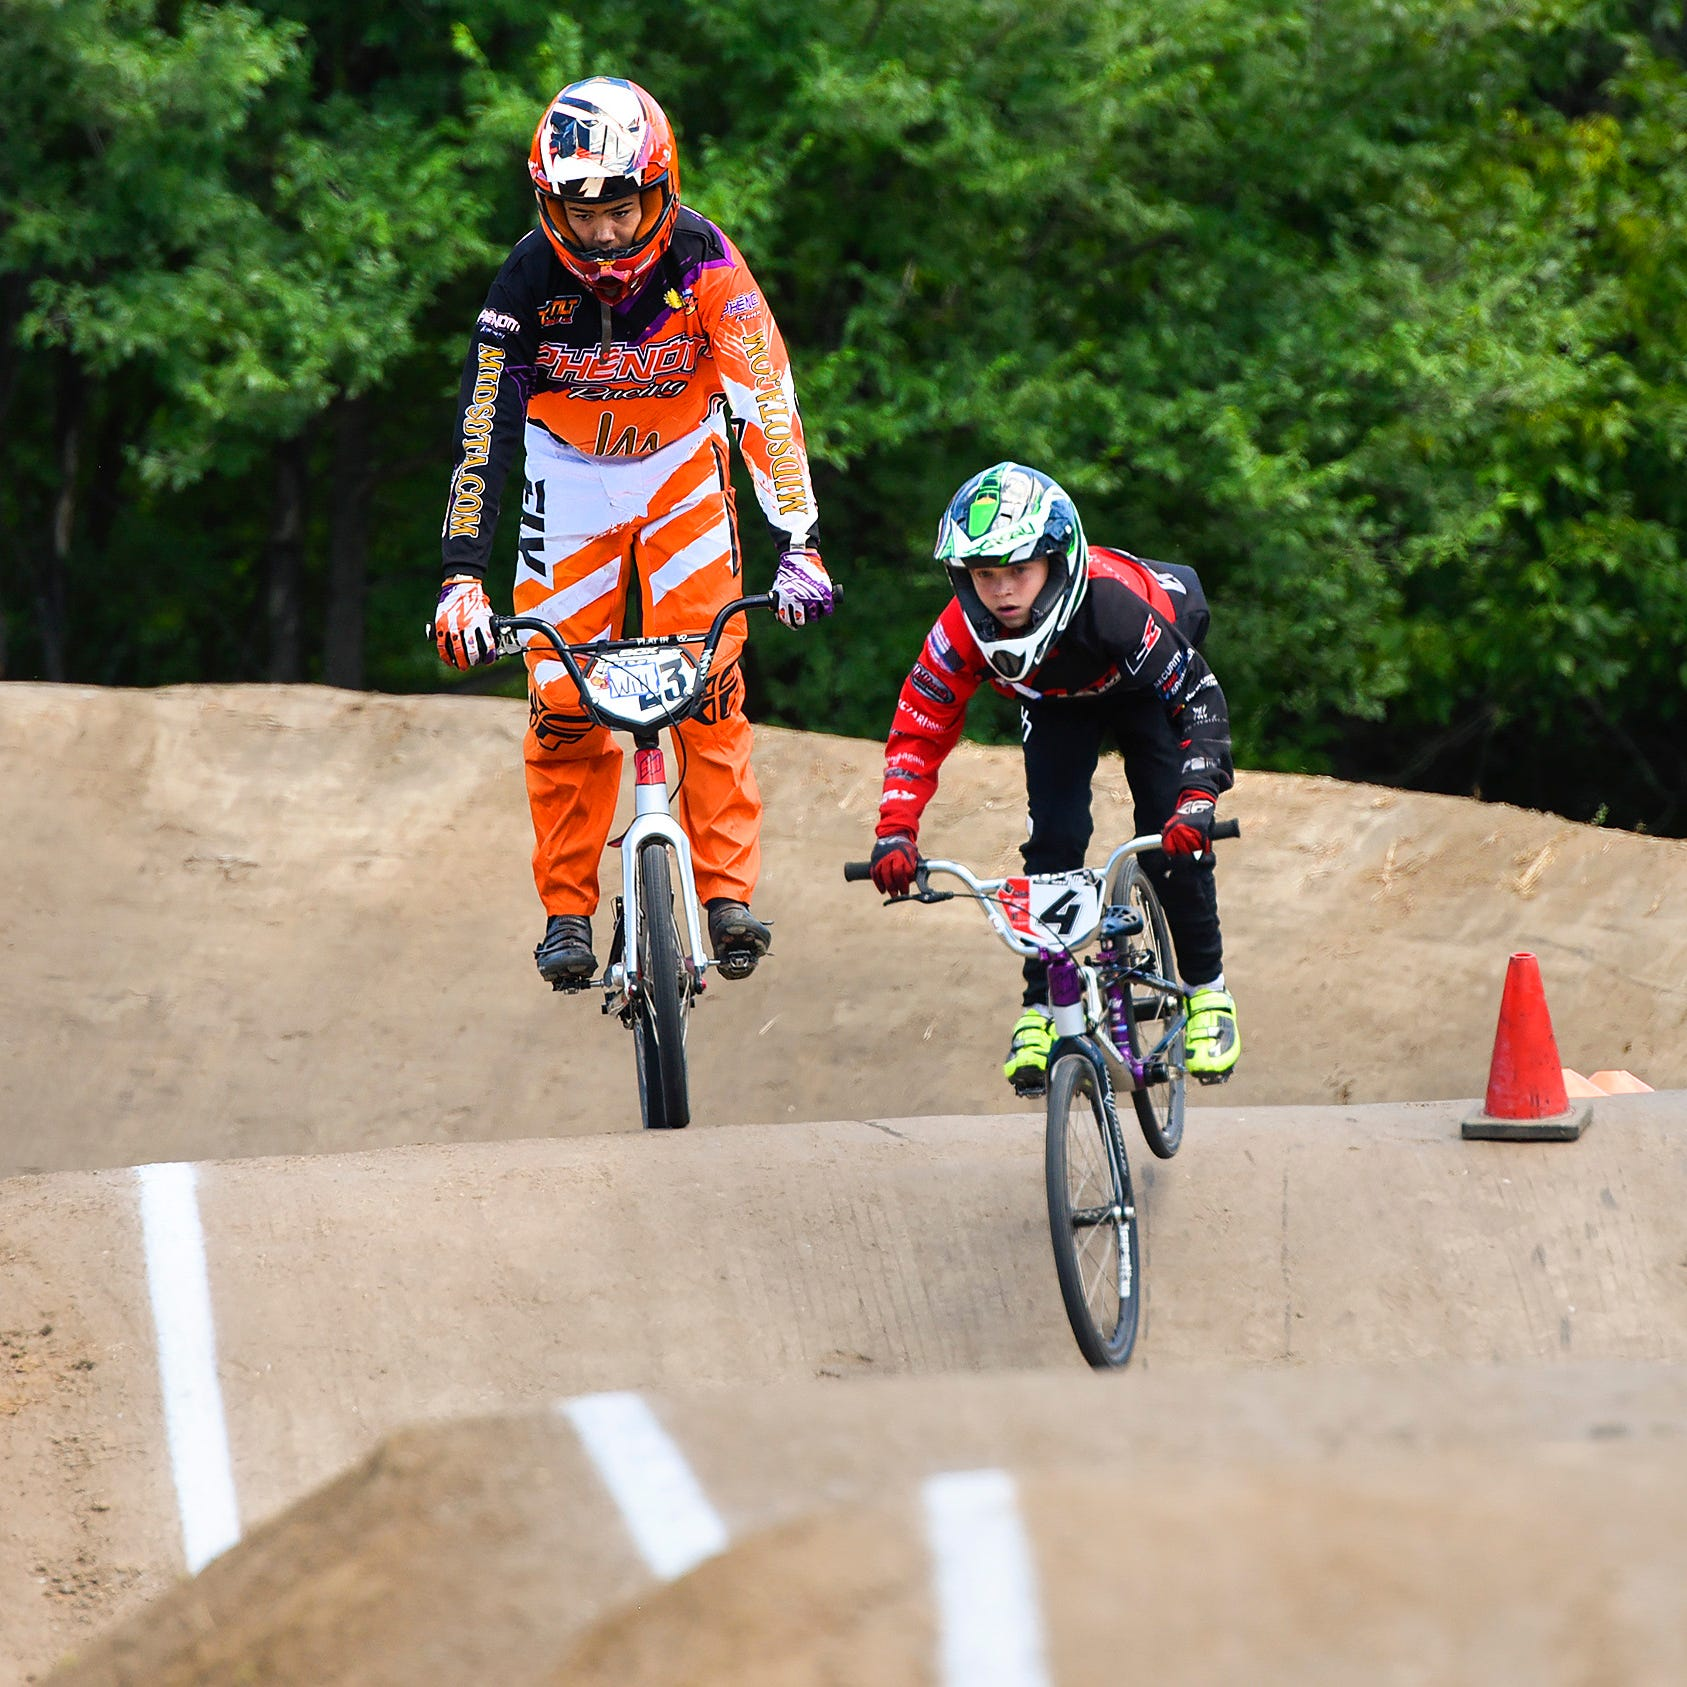 Pineview Park BMX grows on a promise and a little white lie